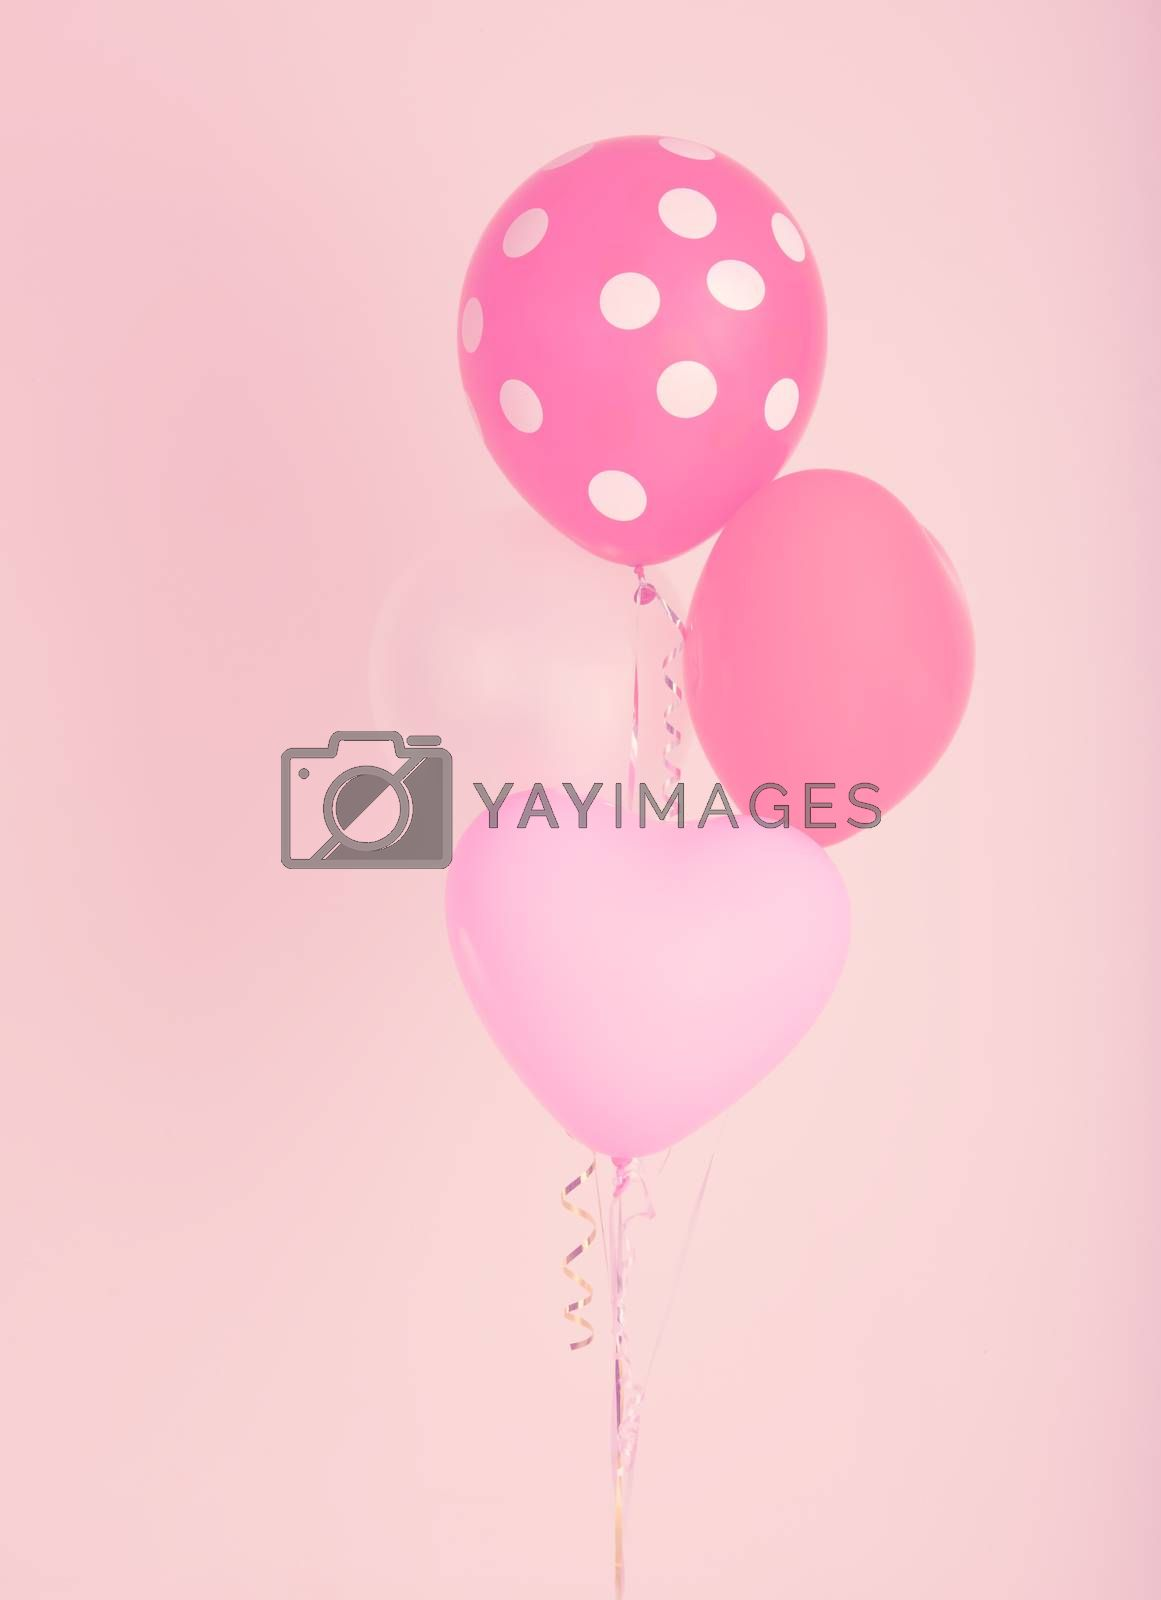 Fastive heart shape balloons on pink wall with vintage filter effect